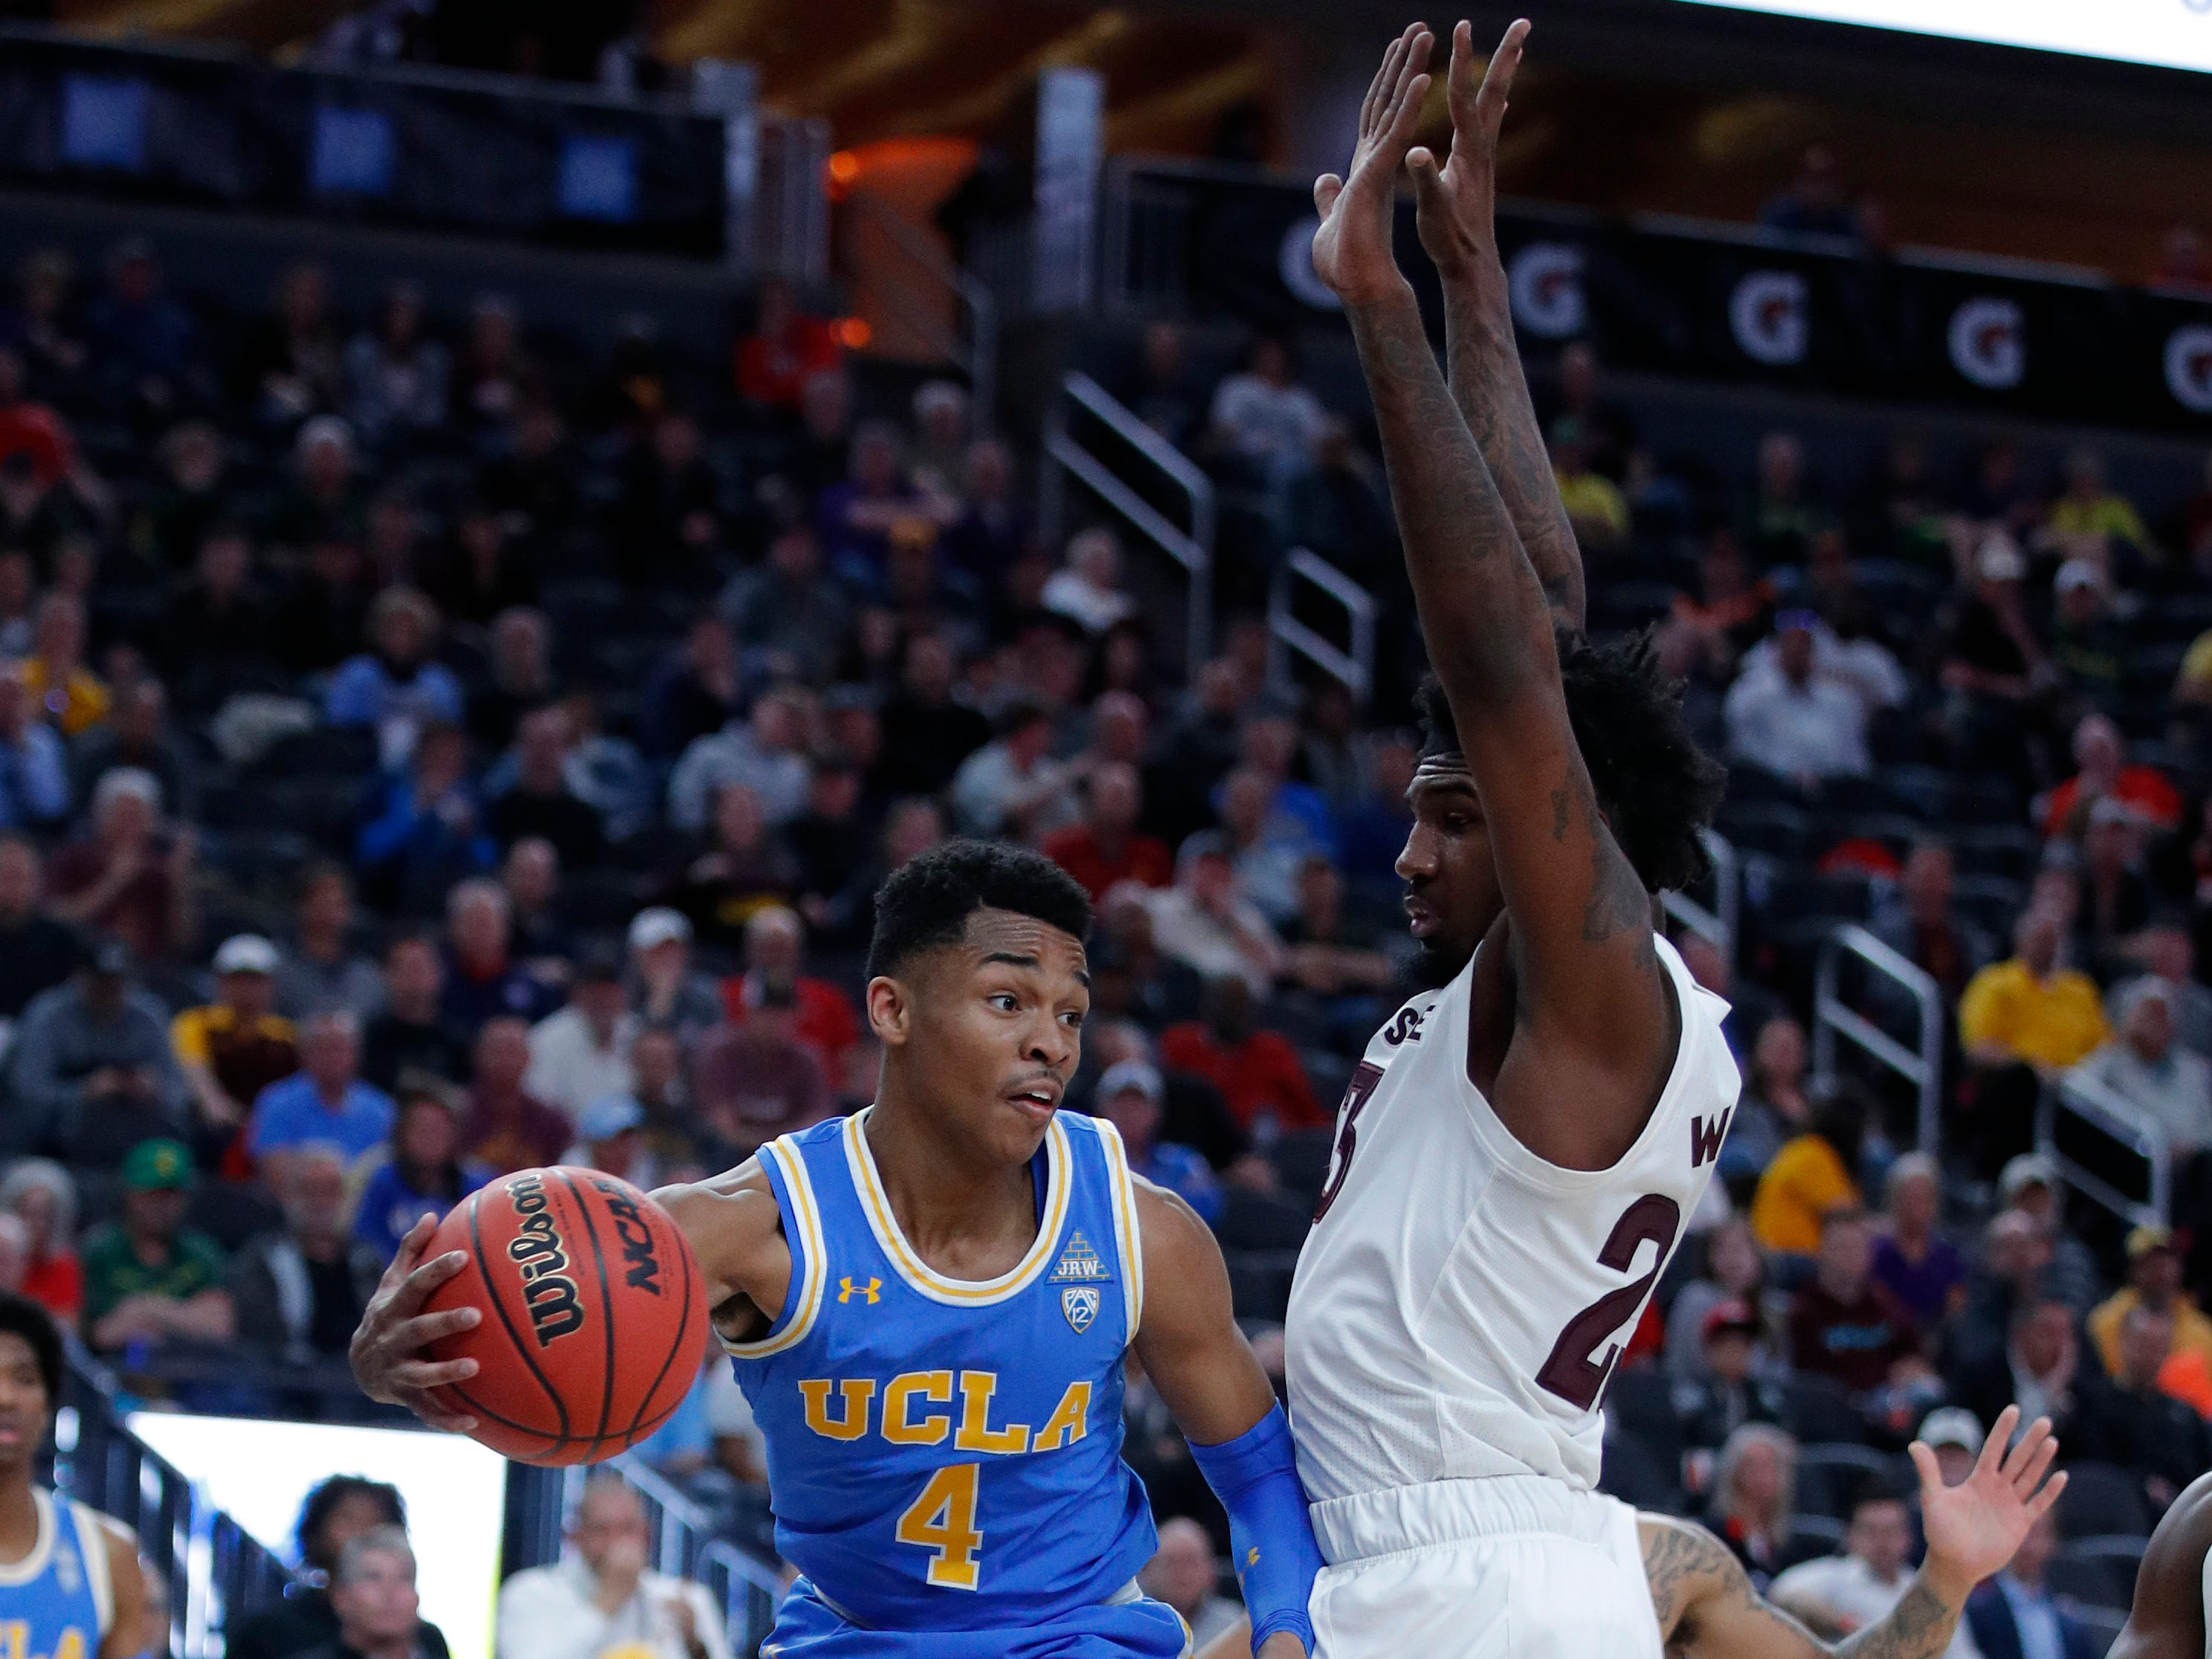 UCLA's Jaylen Hands passes around Arizona State's Romello White during the first half of an NCAA college basketball game in the quarterfinals of the Pac-12 men's tournament Thursday, March 14, 2019, in Las Vegas.